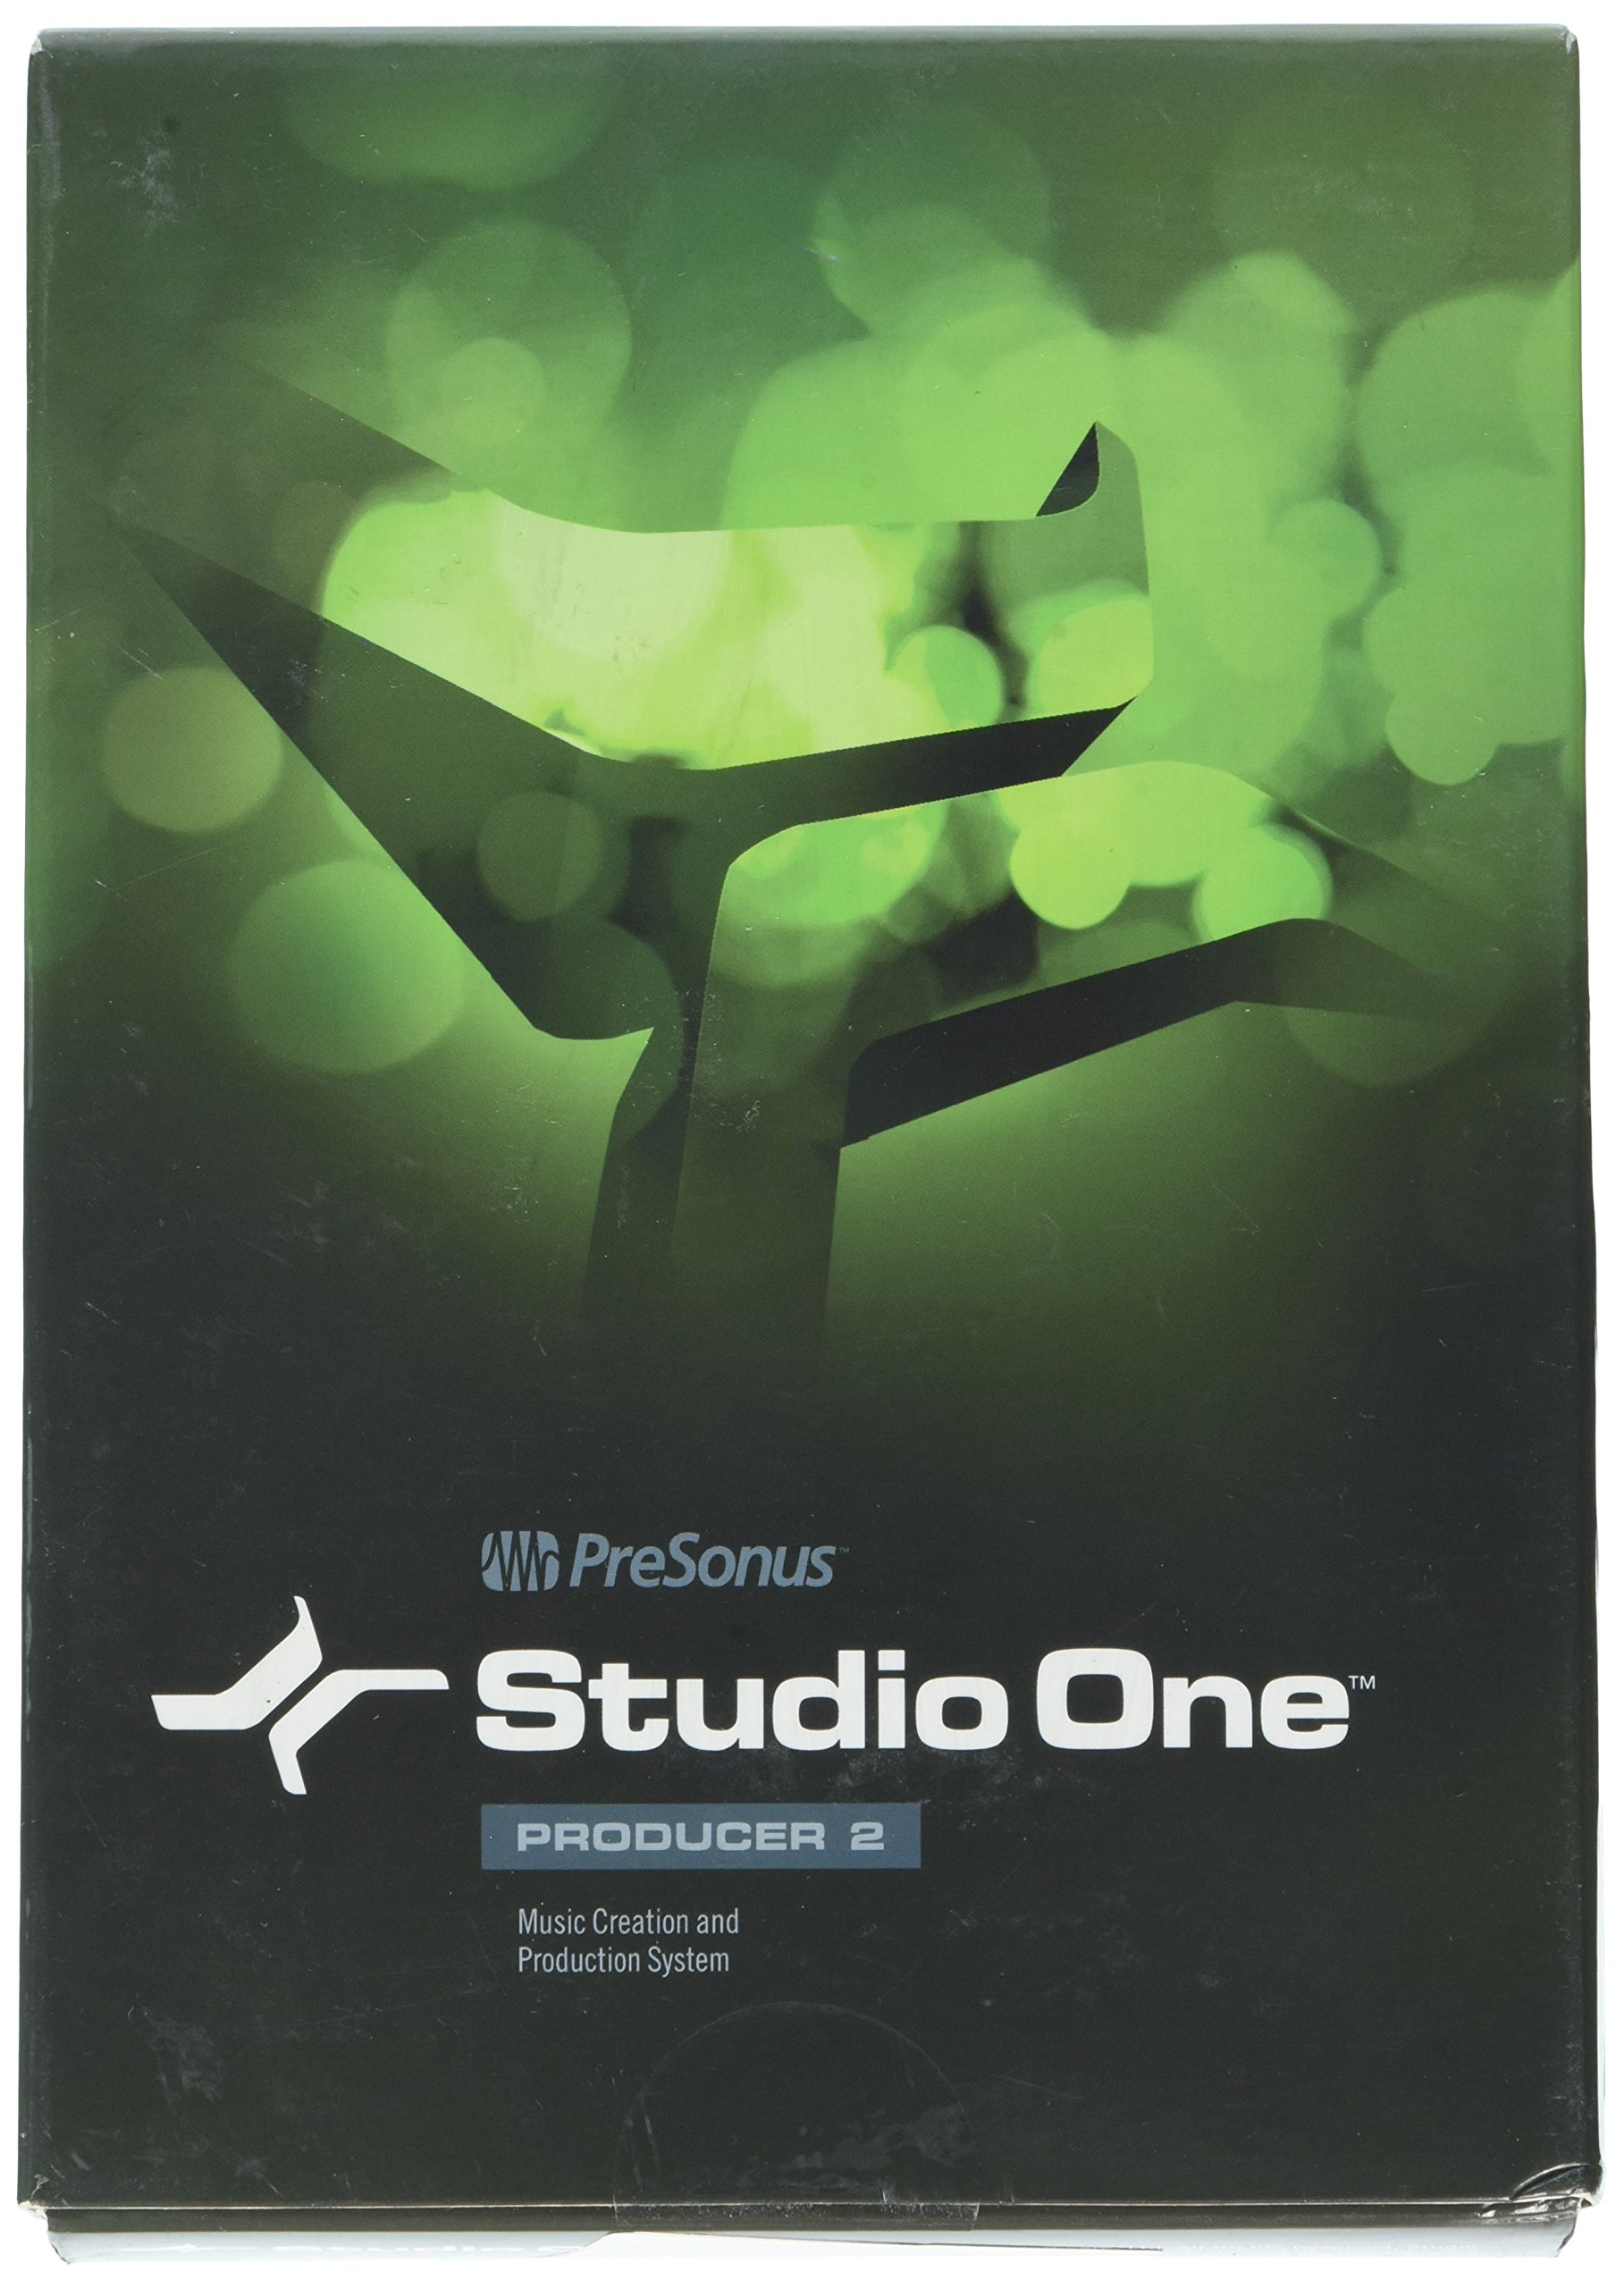 PreSonus Studio One Producer Audio Software by PreSonus (Image #1)